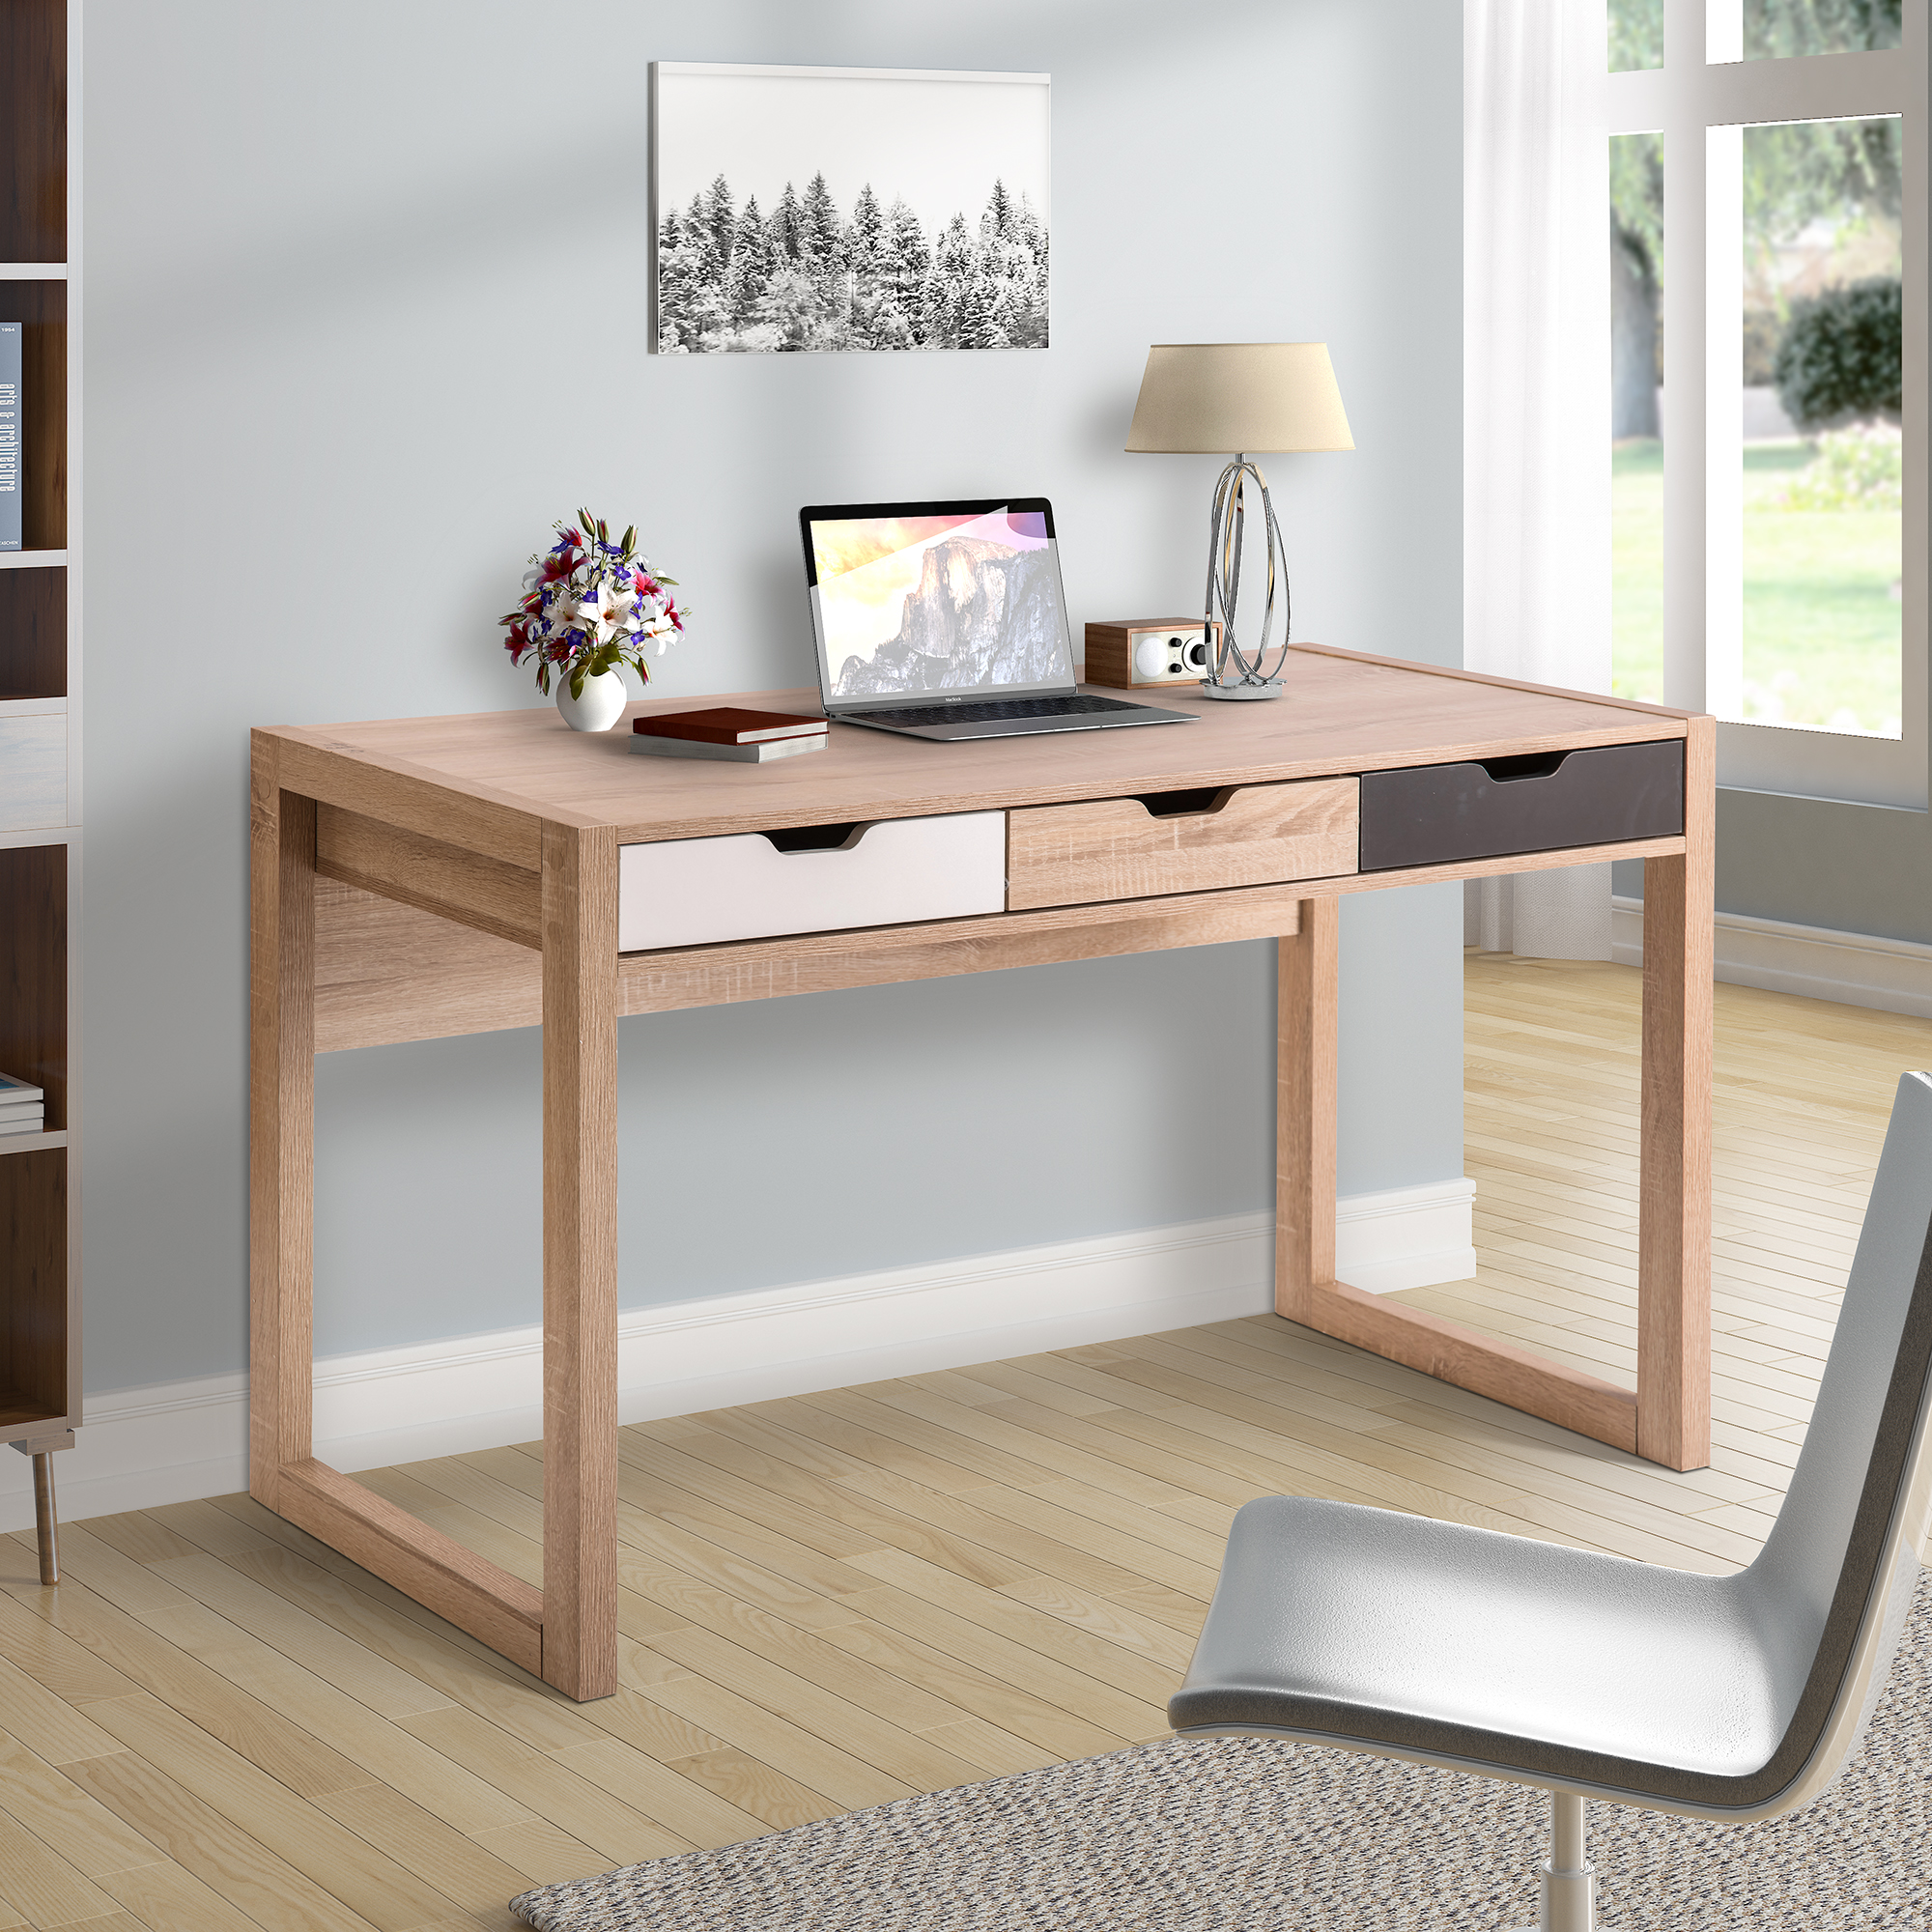 ModernLuxe Wood Computer Desk for Home Office with Drawers, Multiple Colors